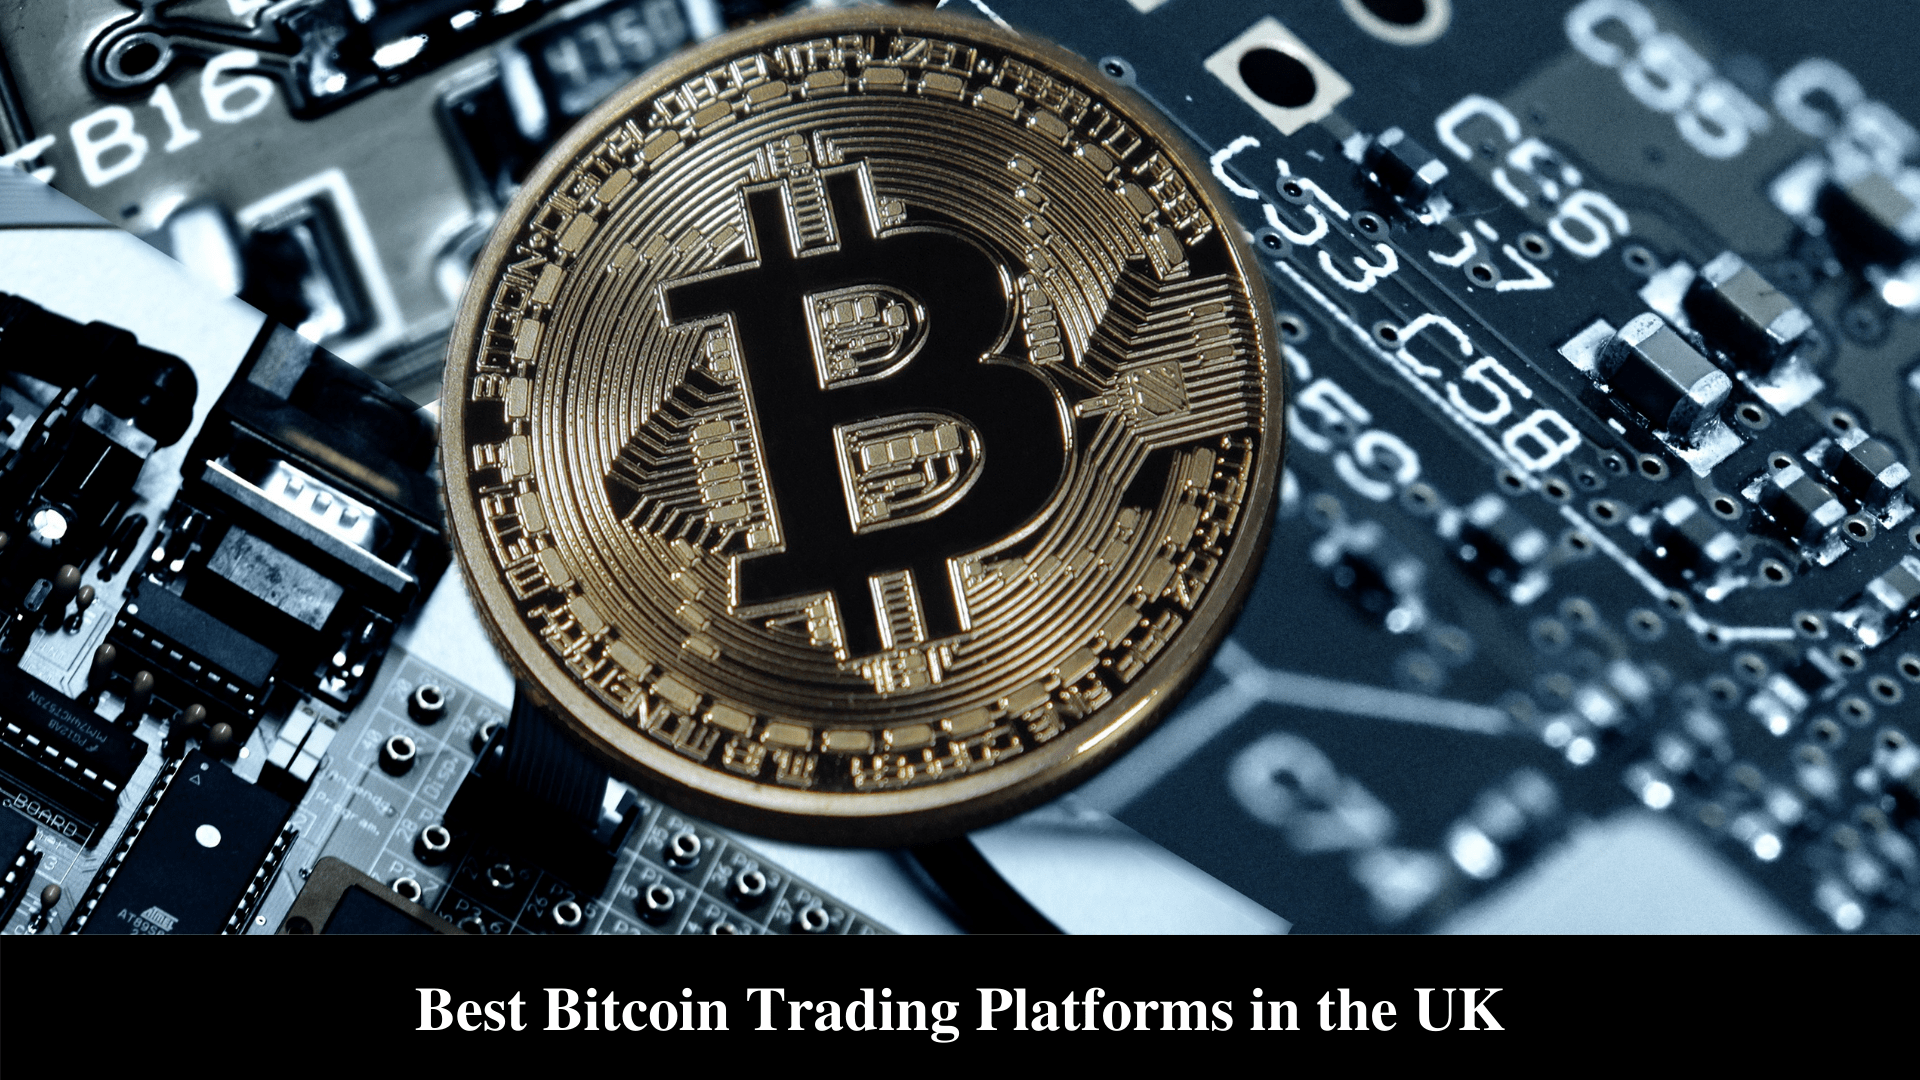 Best Bitcoin Trading Platforms in the UK